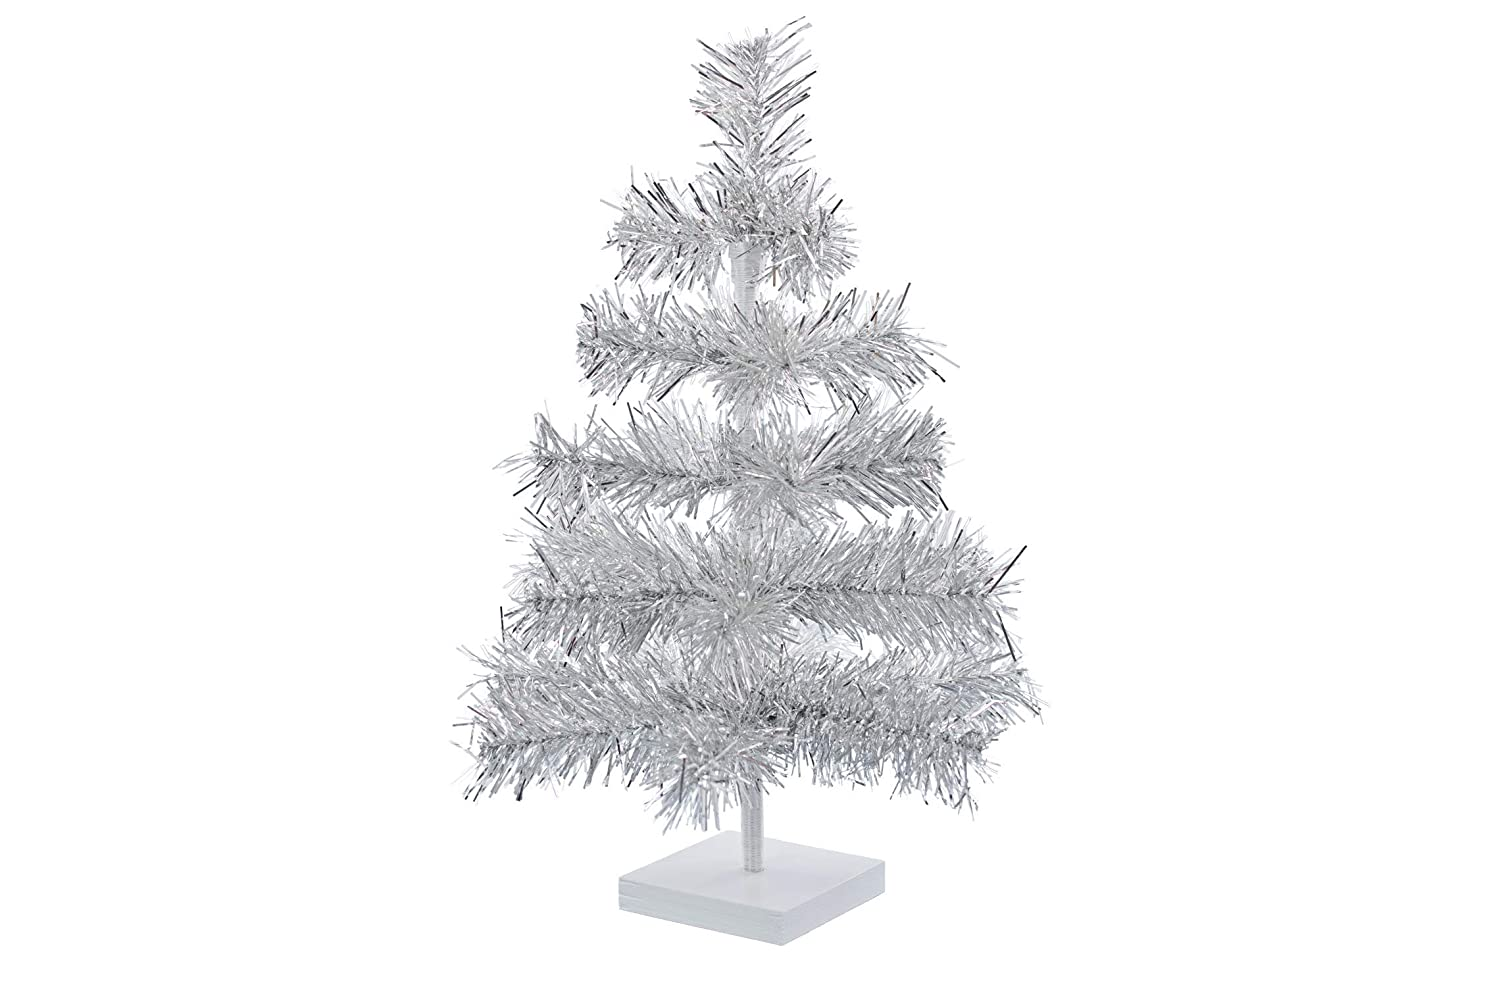 Small Silver Christmas Tree.Est Lee Display Ld 1902 24 Silver Christmas Trees Artificial Aluminum Brush Branches Classic Tinsel Feather Tree Tabletop Christmas Decoration Tree